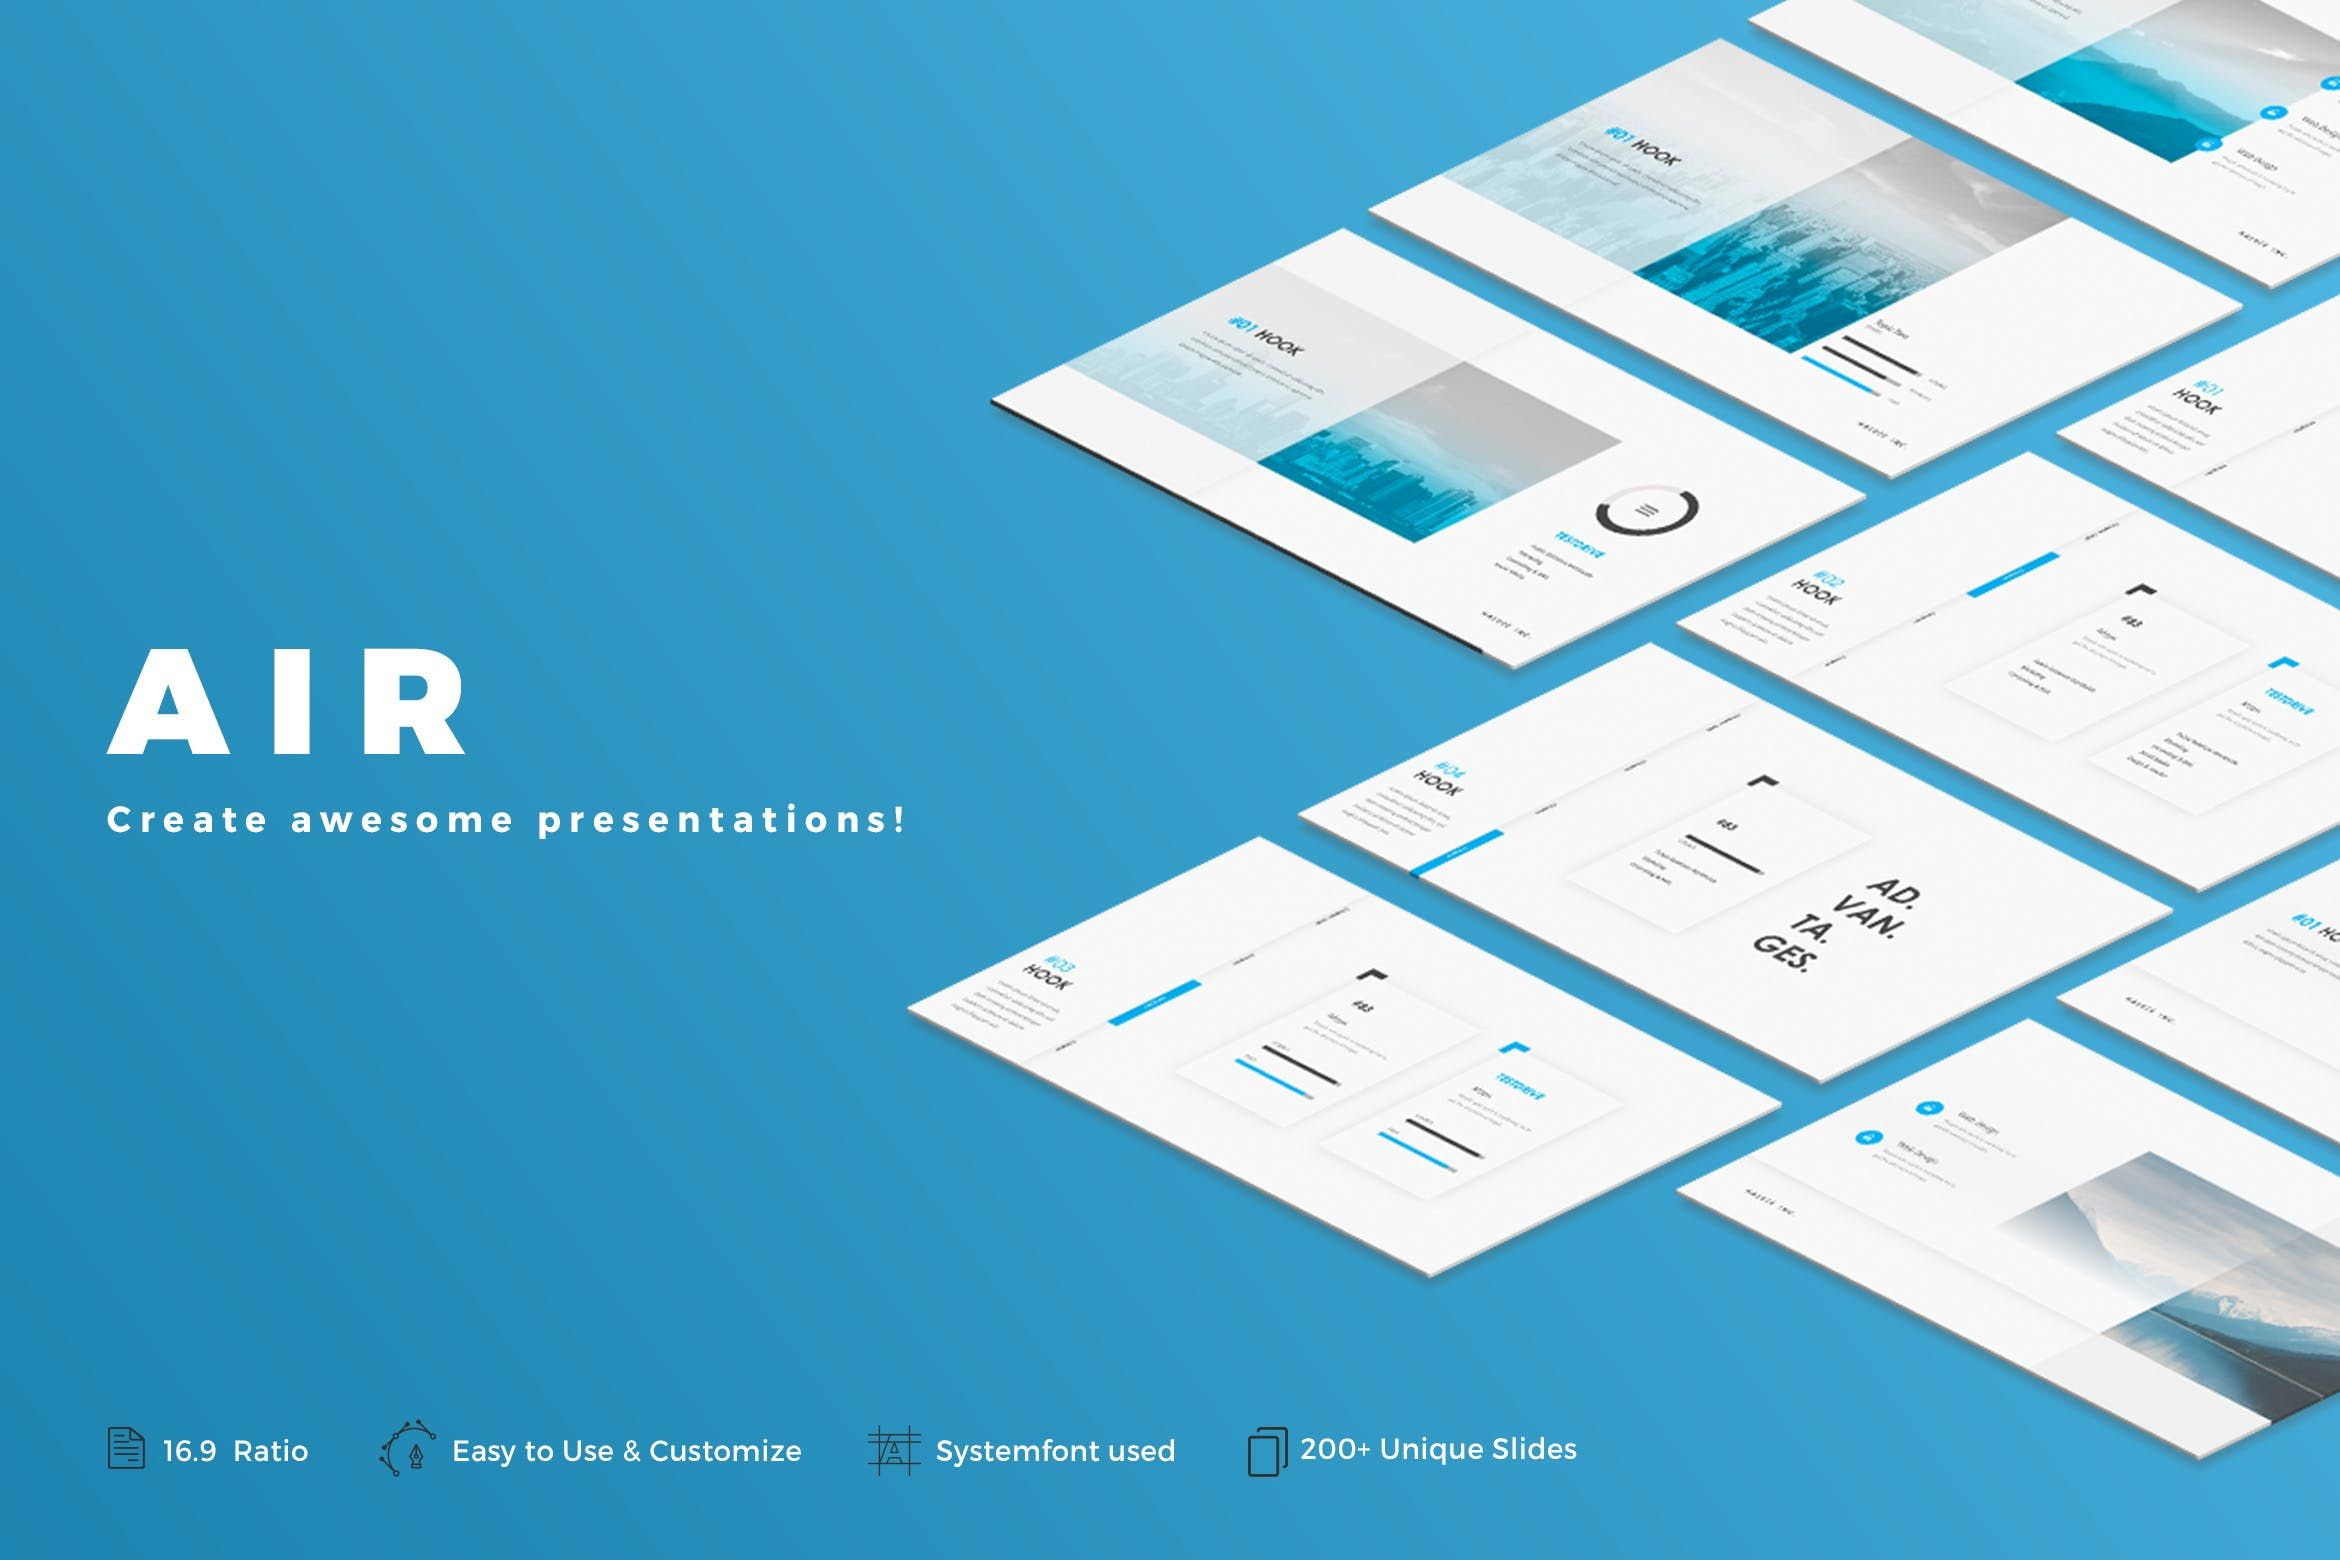 This is 1 of 1000s of beautiful presentation templates ready to use air powerpoint template by haluze on envato elements toneelgroepblik Gallery